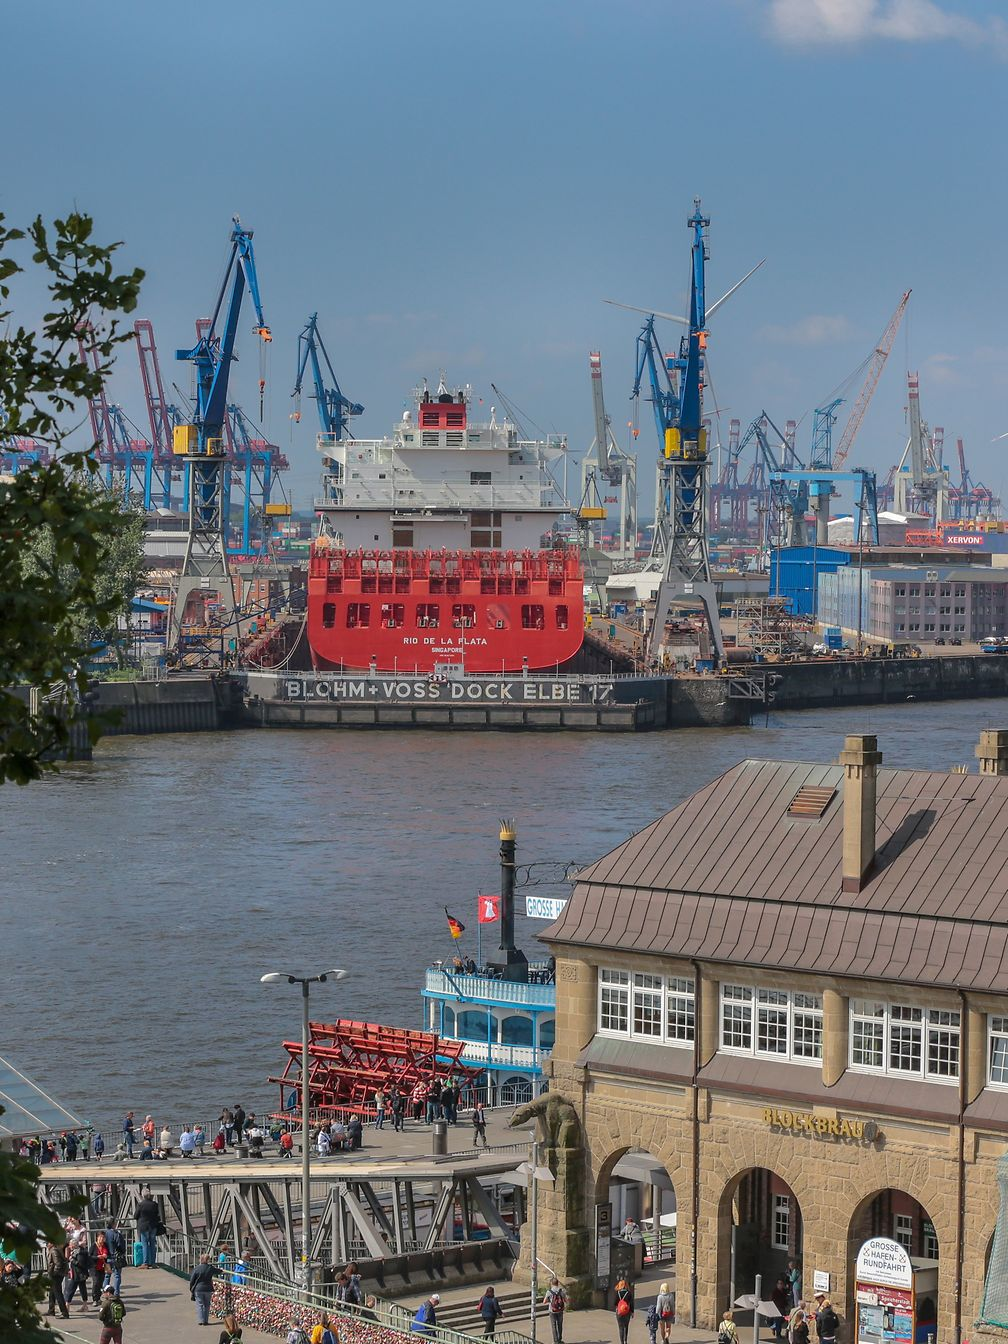 The picture shows the port of Hamburg with all its cranes.